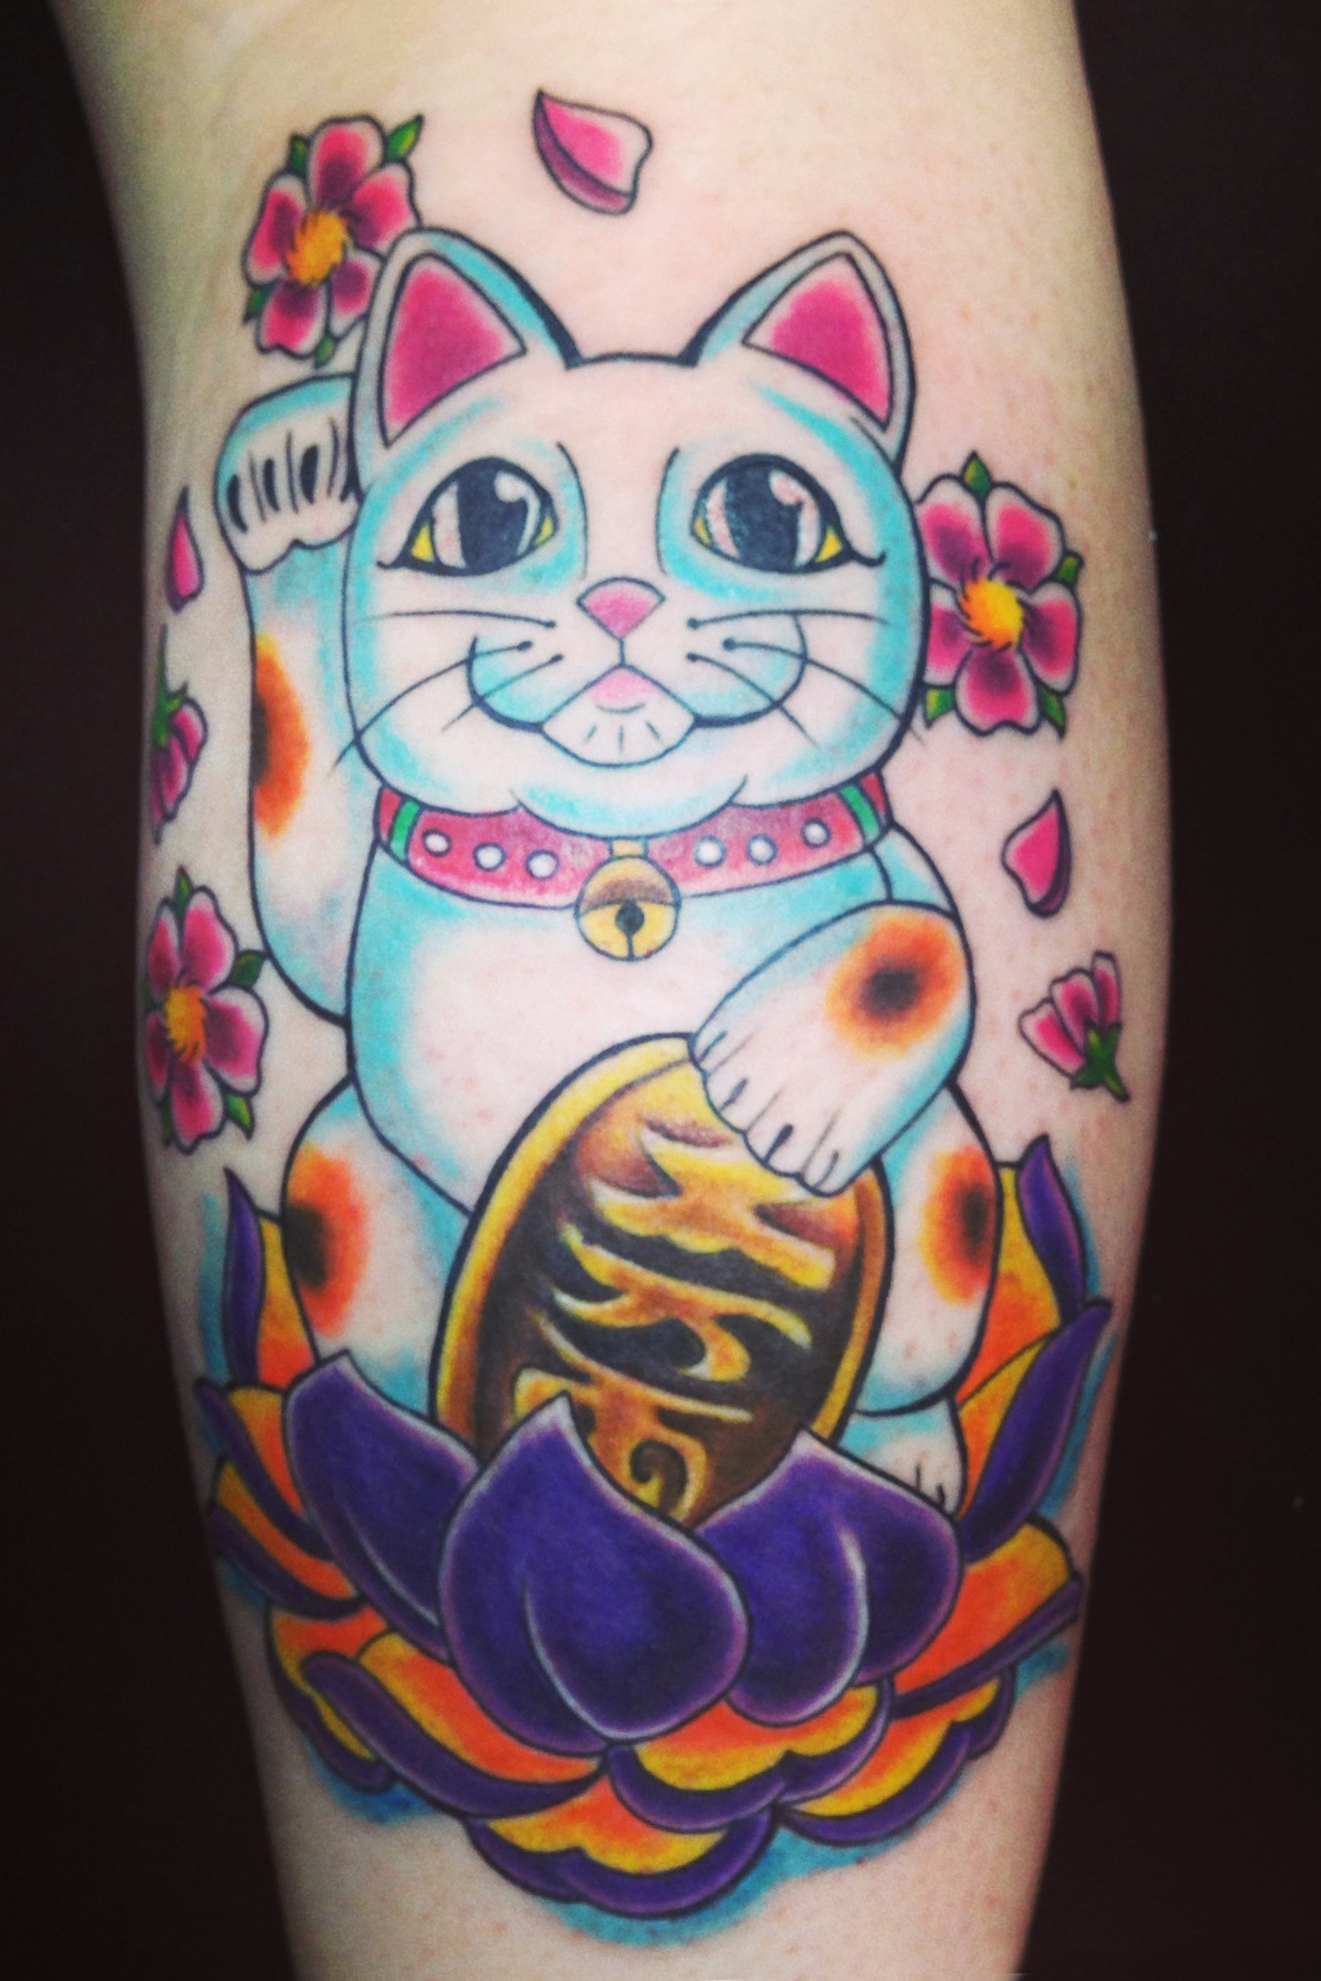 Tattoo Shops In Charlotte Canvas Tattoo Art Gallery Ideas And Designs